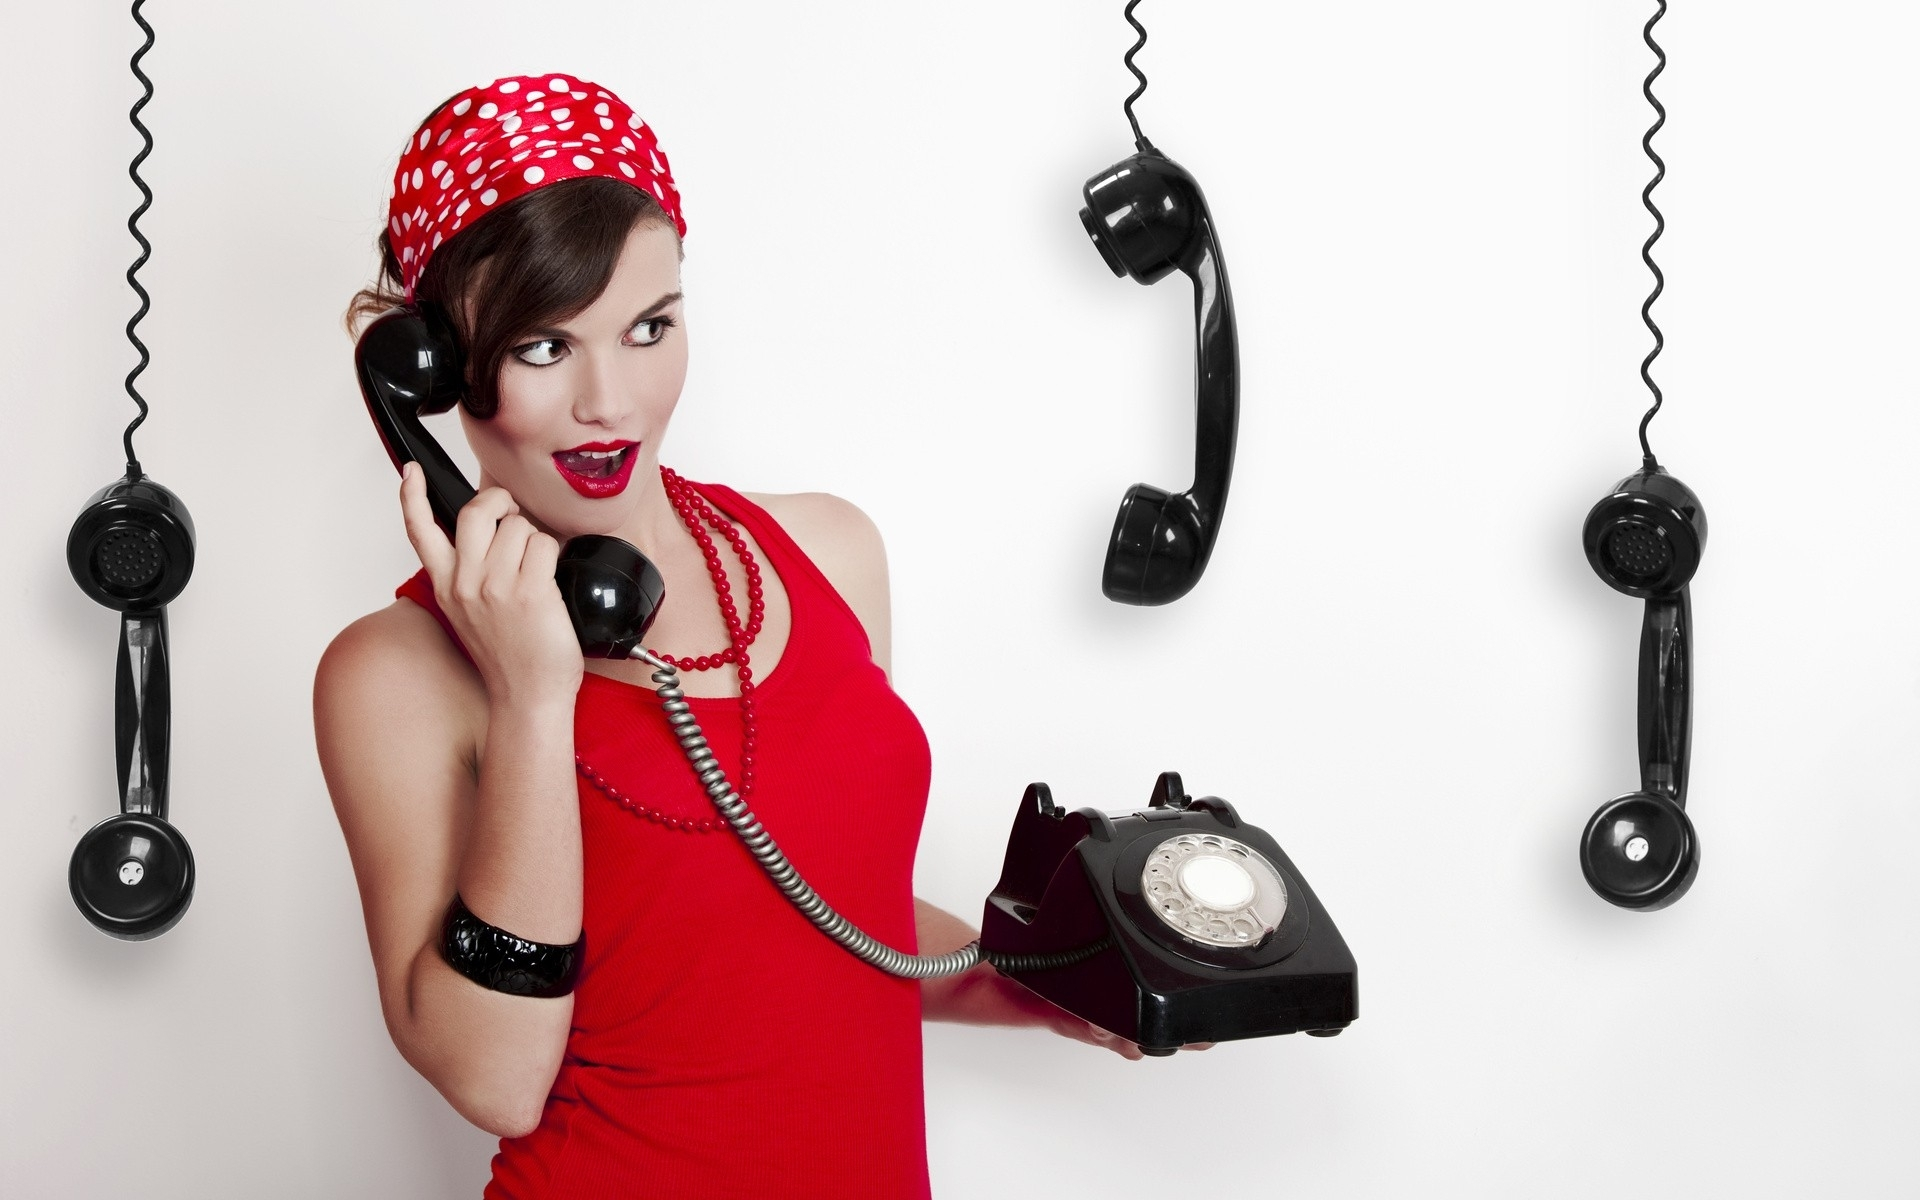 red dress polka dots telephone bandanas necklace model simple background vintage women